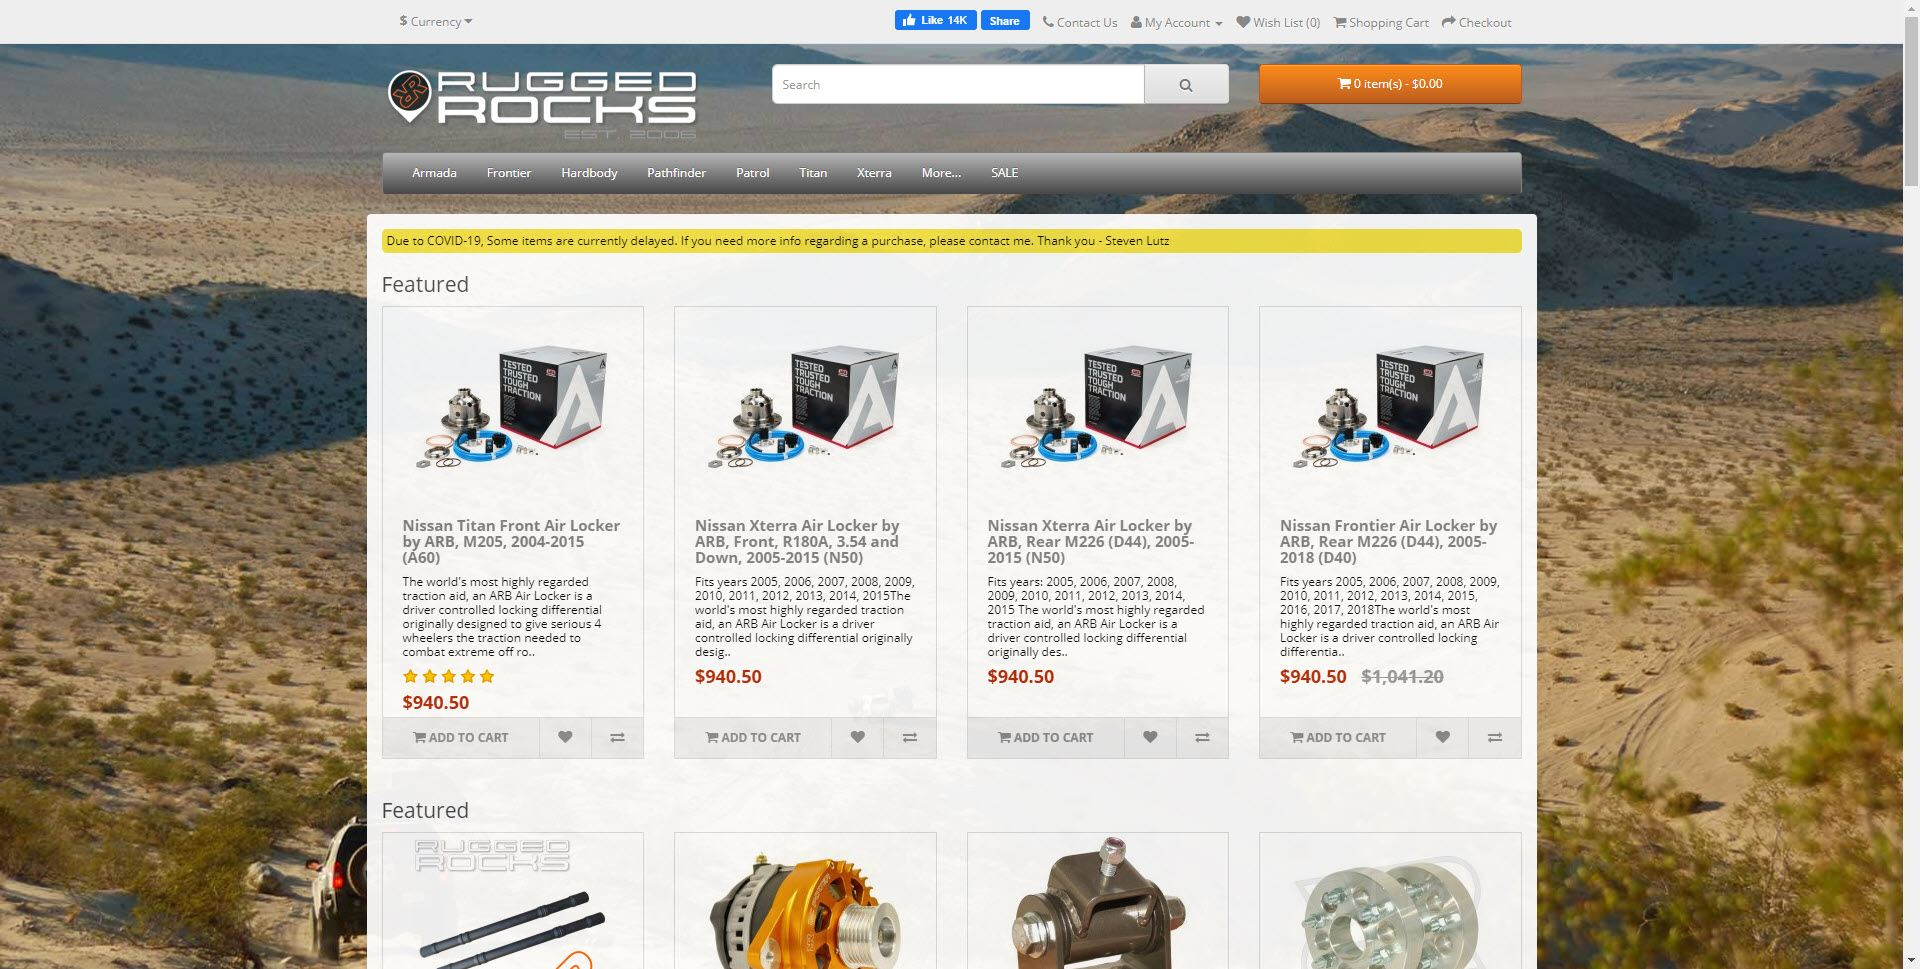 Car Parts Affiliate Programs - Rugged Rocks